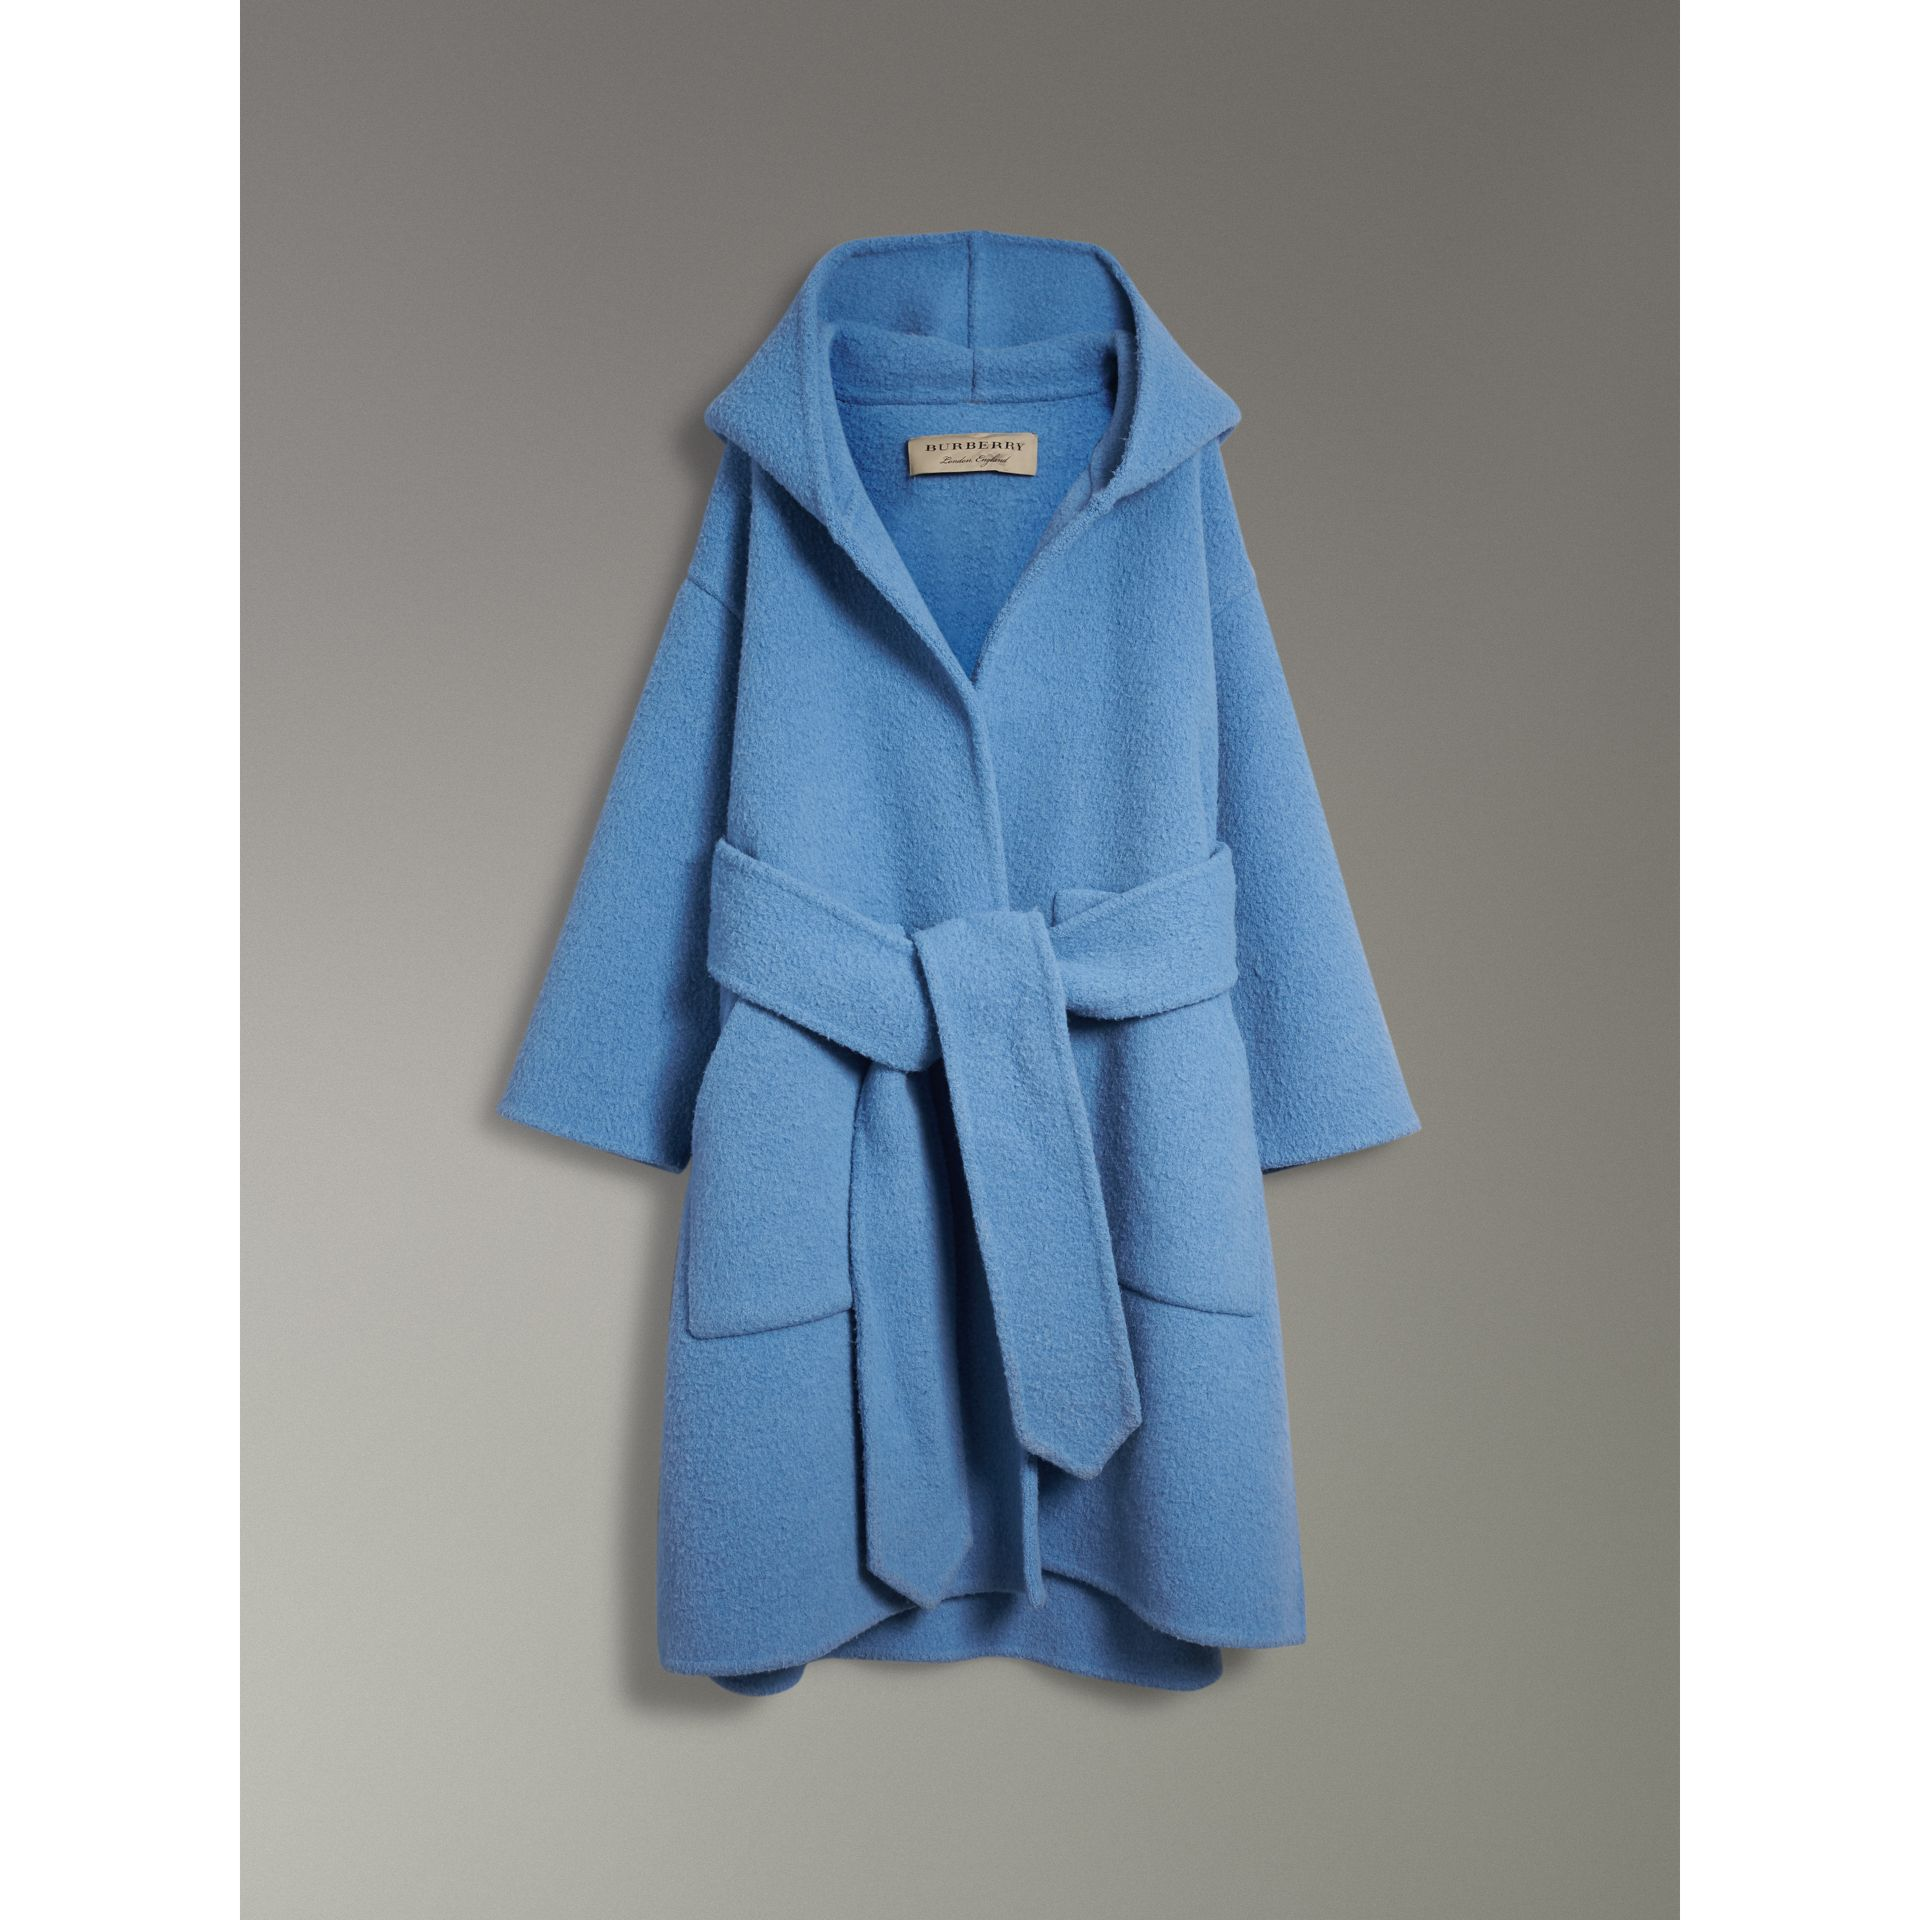 Alpaca Wool Blend Dressing Gown Coat in Hydrangea Blue - Women | Burberry - gallery image 3